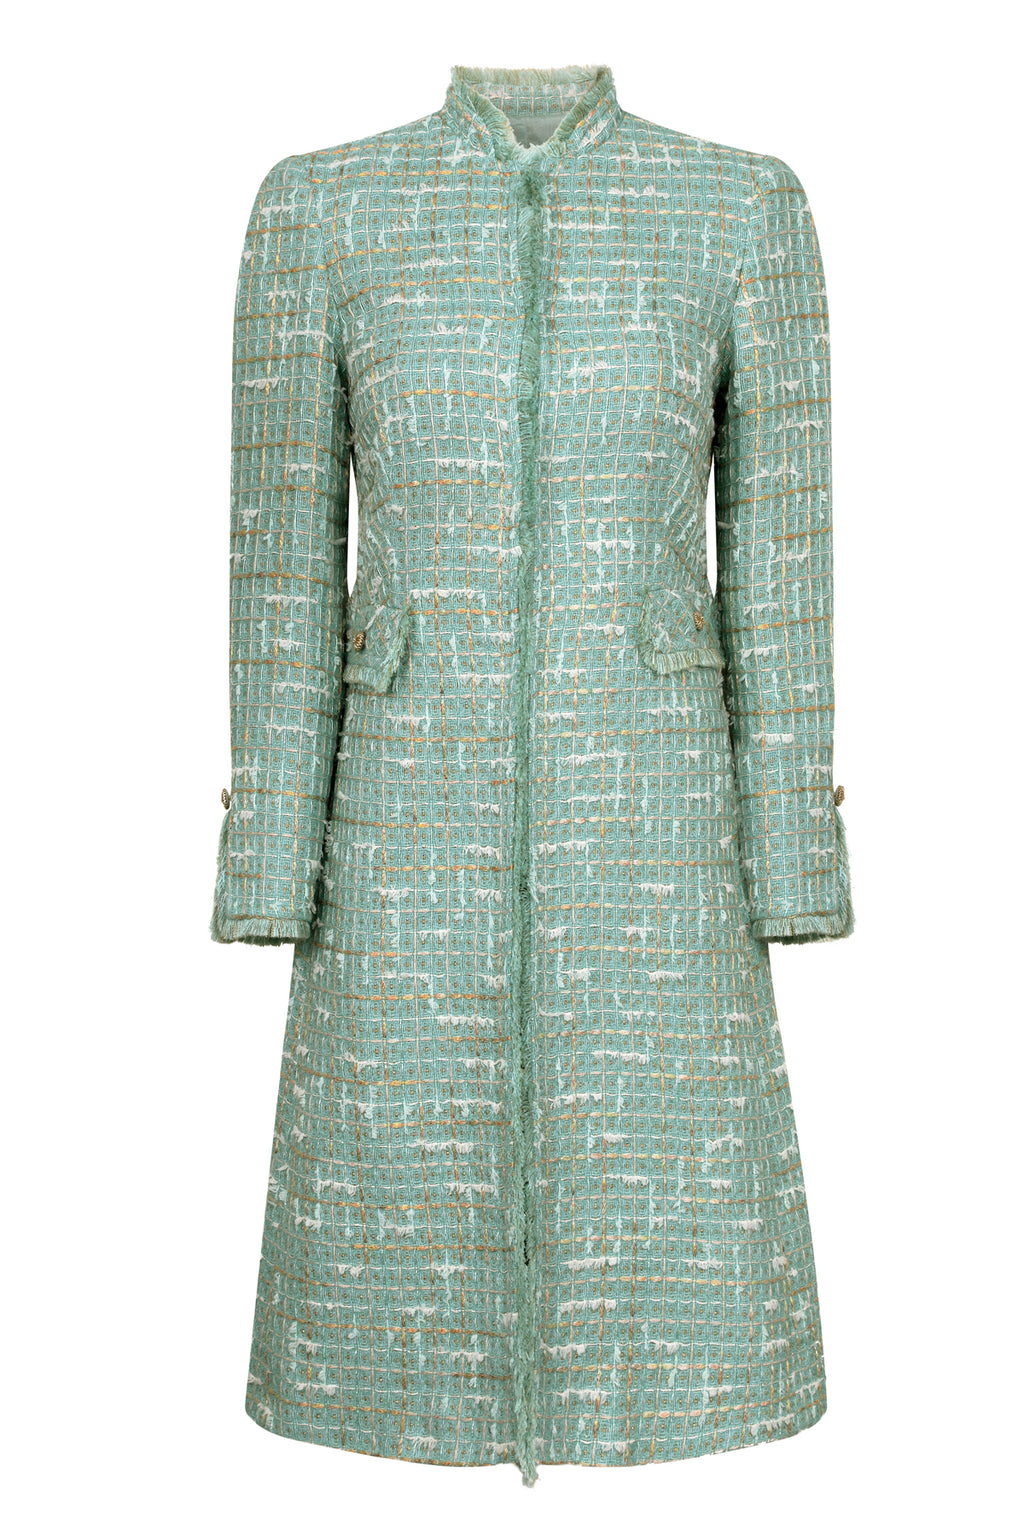 ae93ed08c04 green knee length tweed jacket for mother of the bride